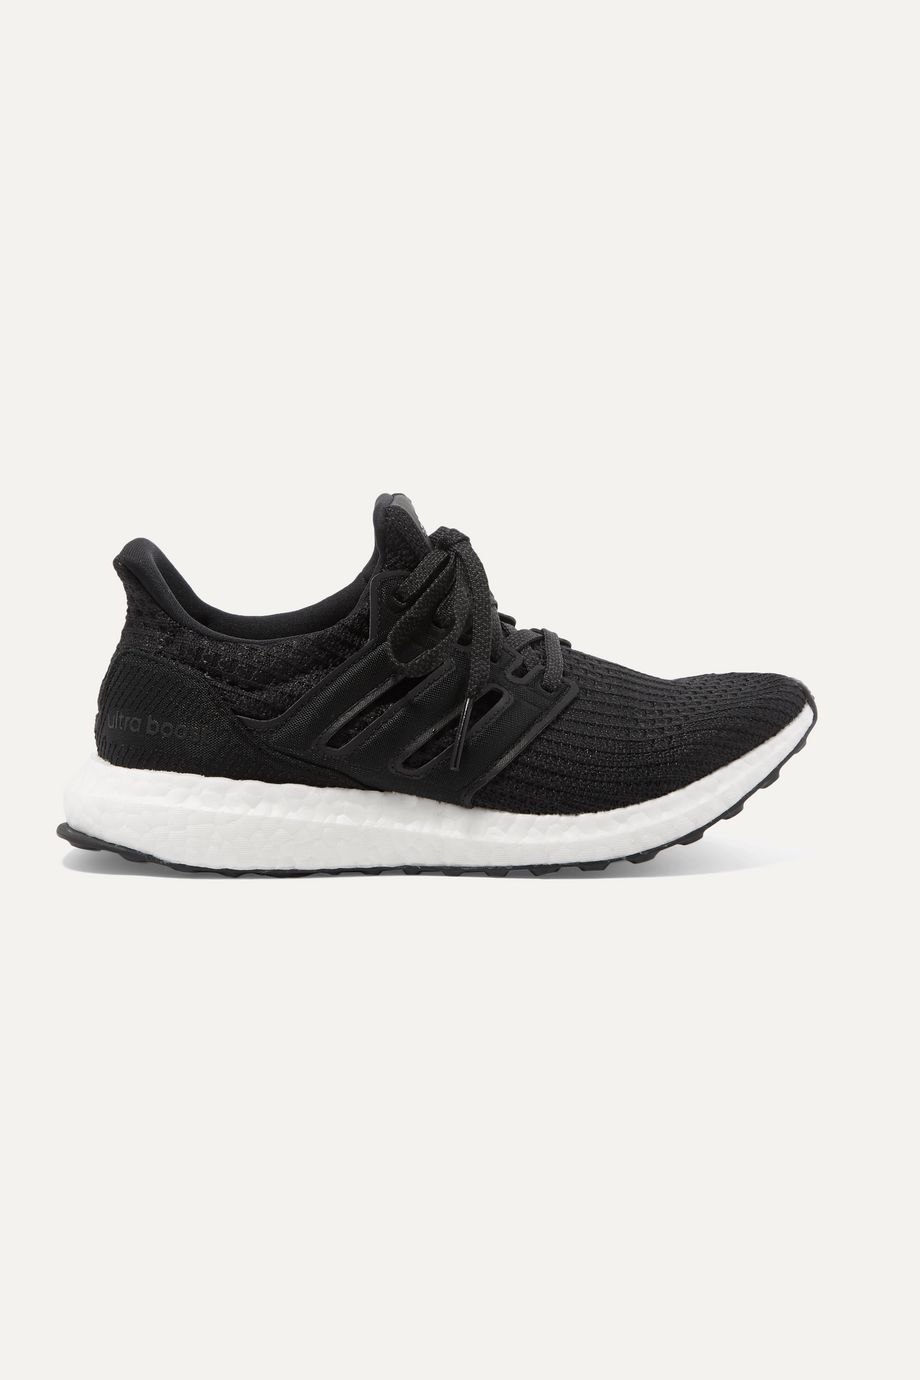 adidas Originals UltraBOOST stretch-knit sneakers